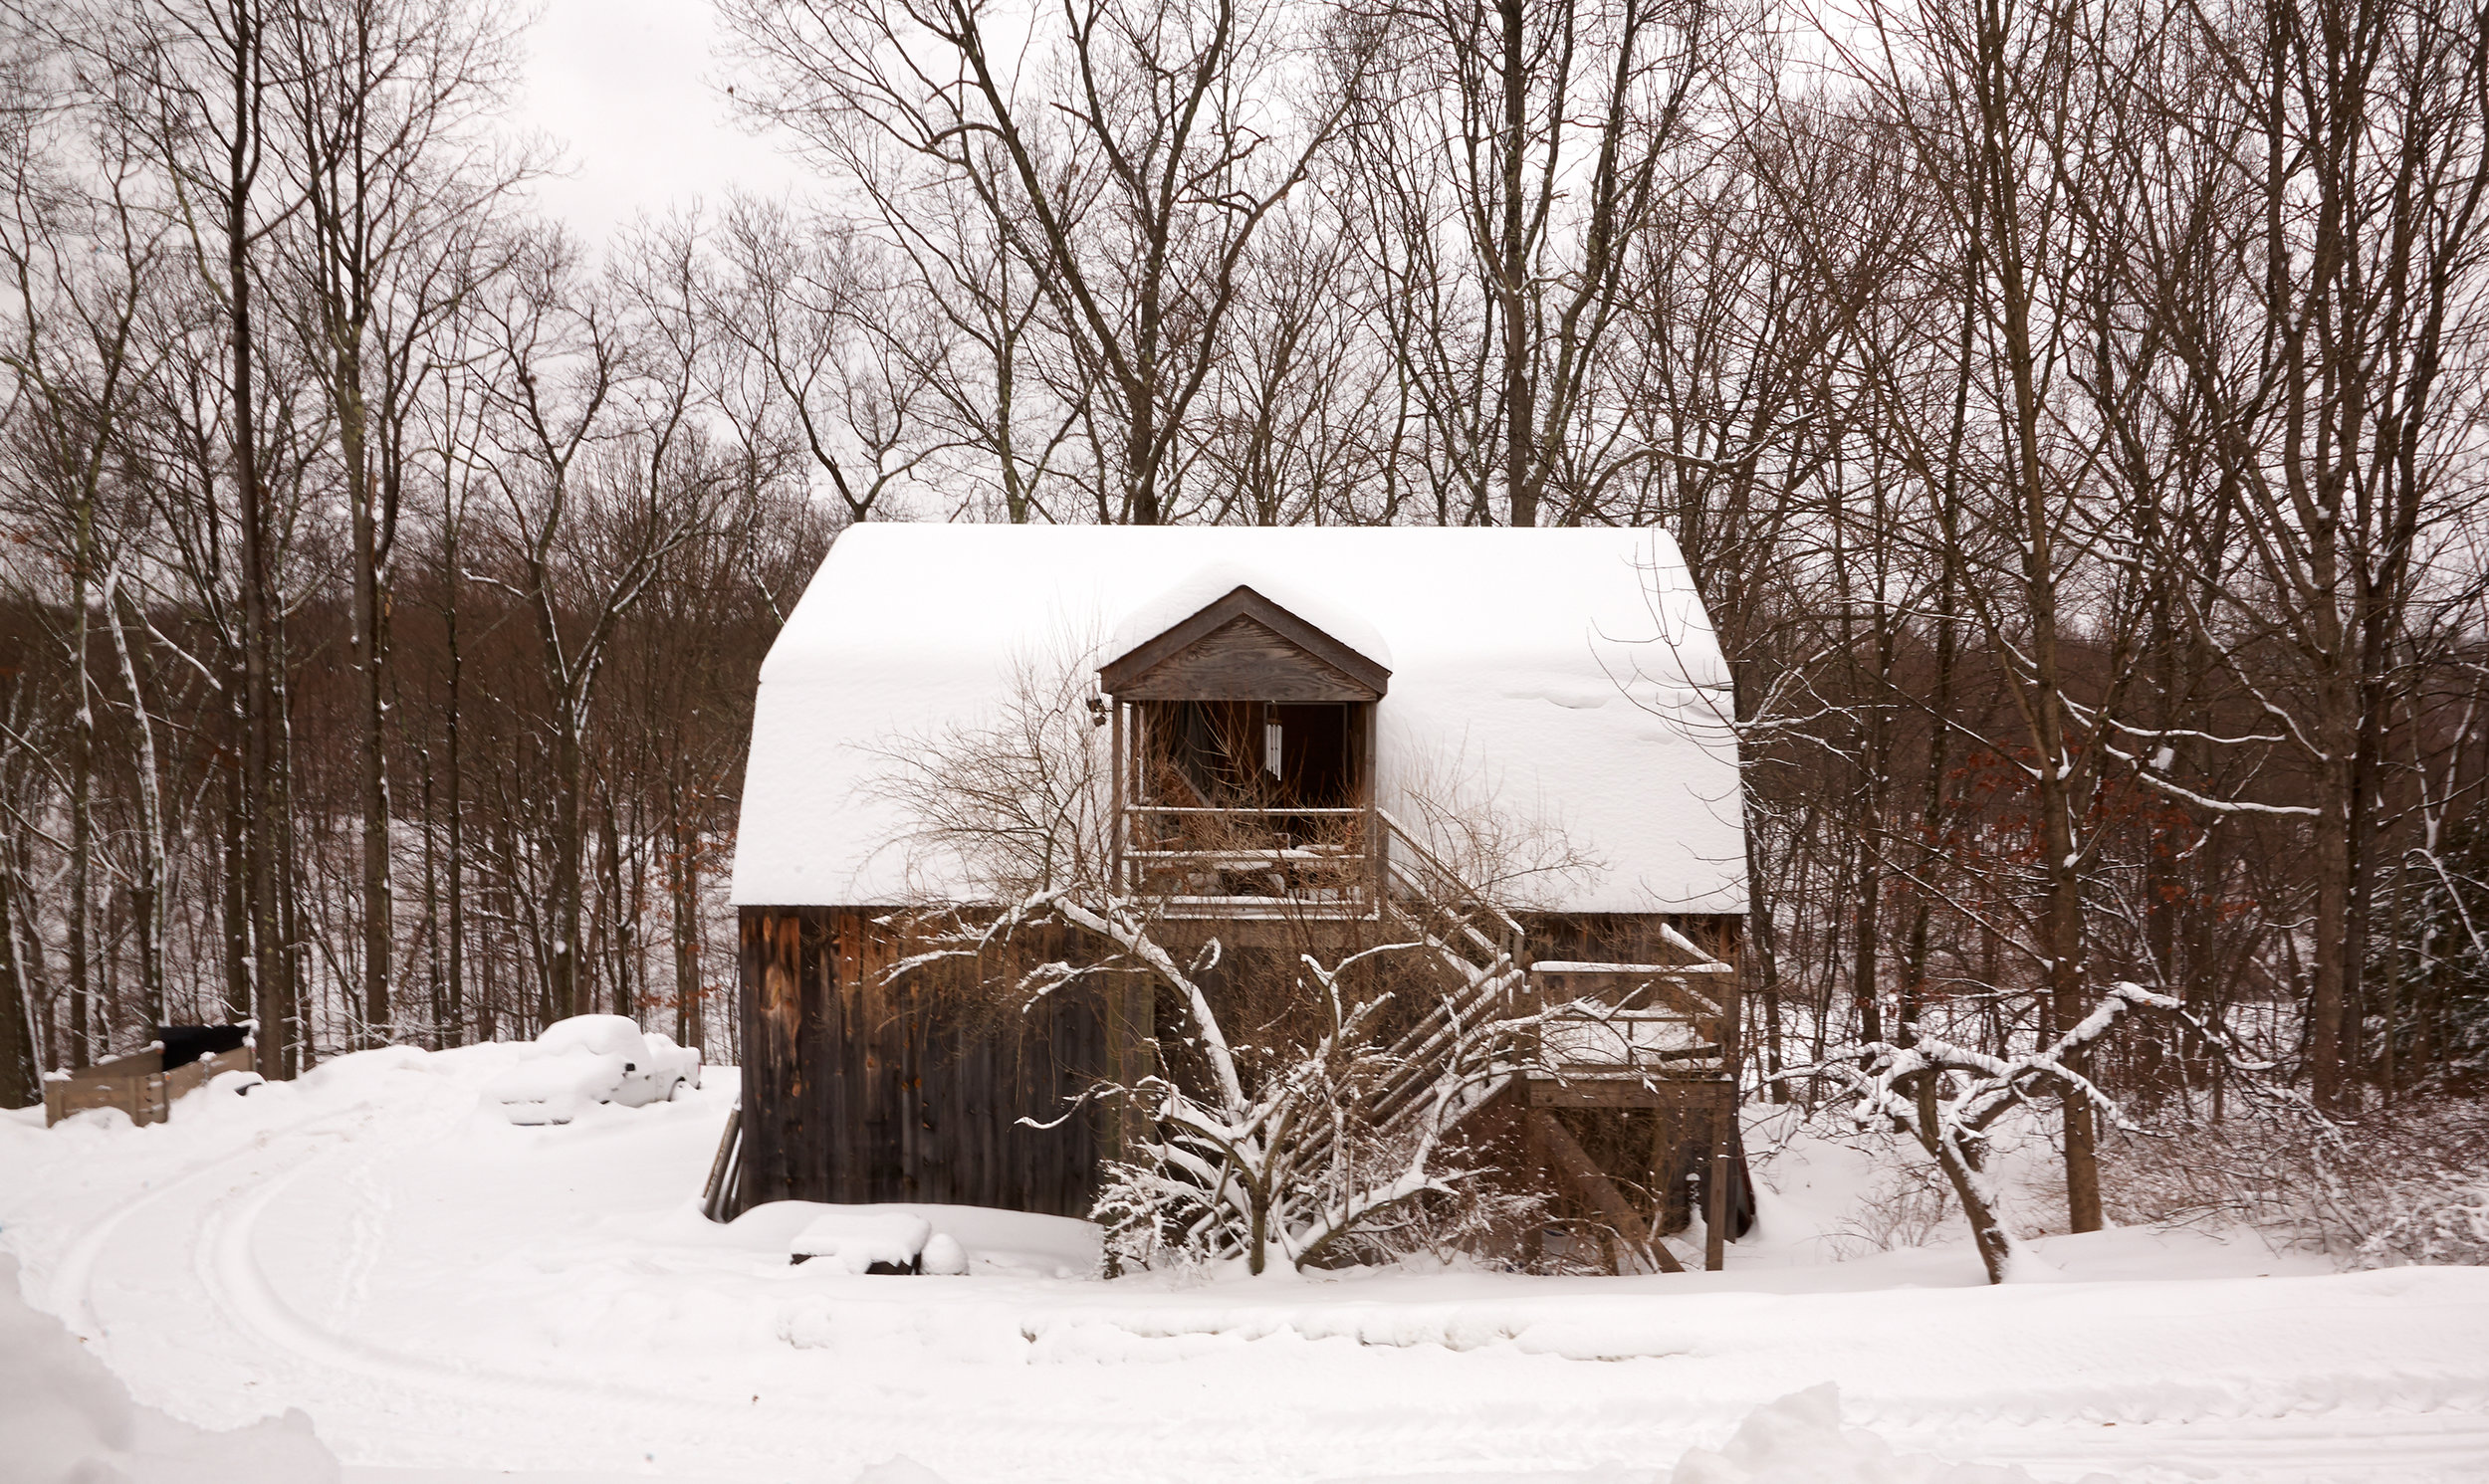 BARN-IN-SNOW-AT-WILTSHIRE-FARM-© JONATHAN-R.-BECKERMAN-PHOTOGRAPHY.jpg